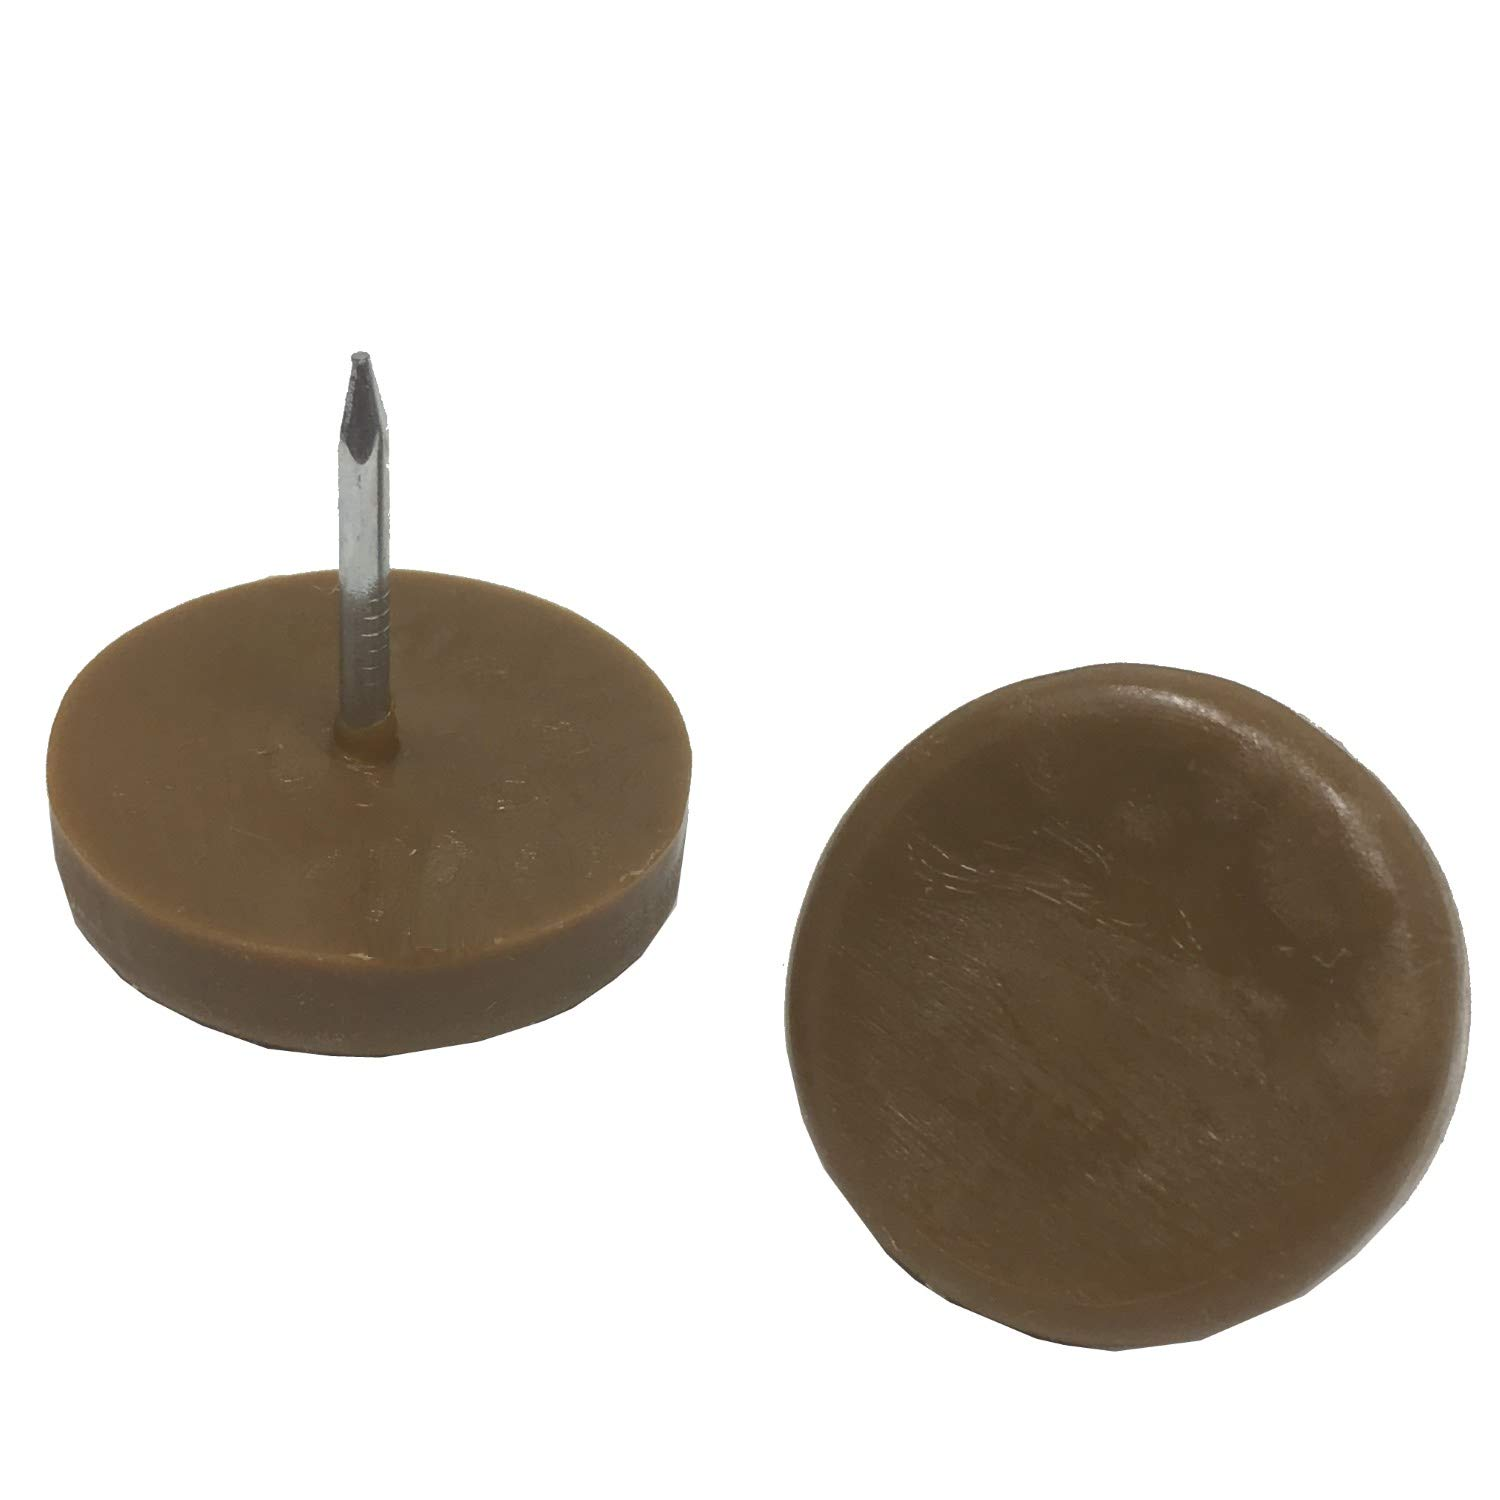 Desunia 1'' Dia. Nylon Slider Glides for Chairs, Stools, Tables - Protects Your Floors as Furniture Slides Like Magic Over Tile, Carpet, Hardwood - Brown - Box of 25